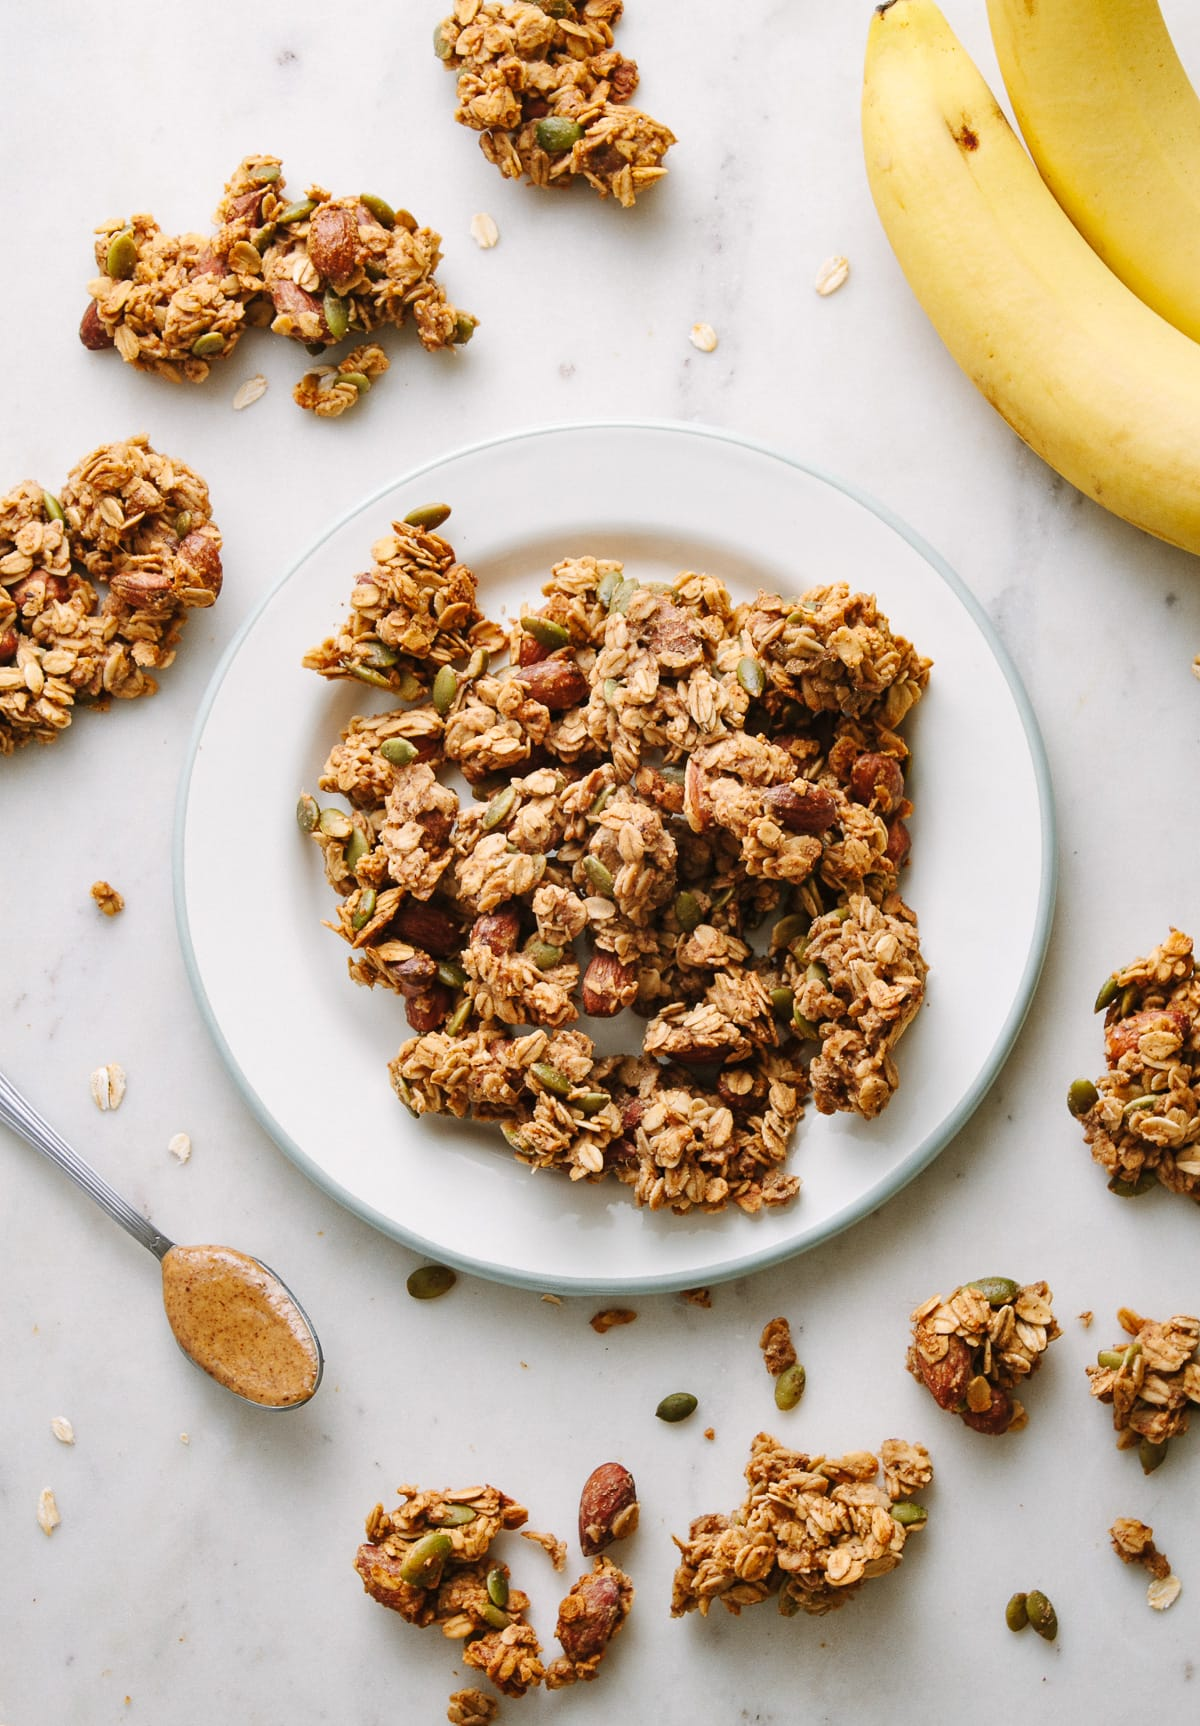 top down view of peanut butter banana granola clusters on a plate, surrounded by items.